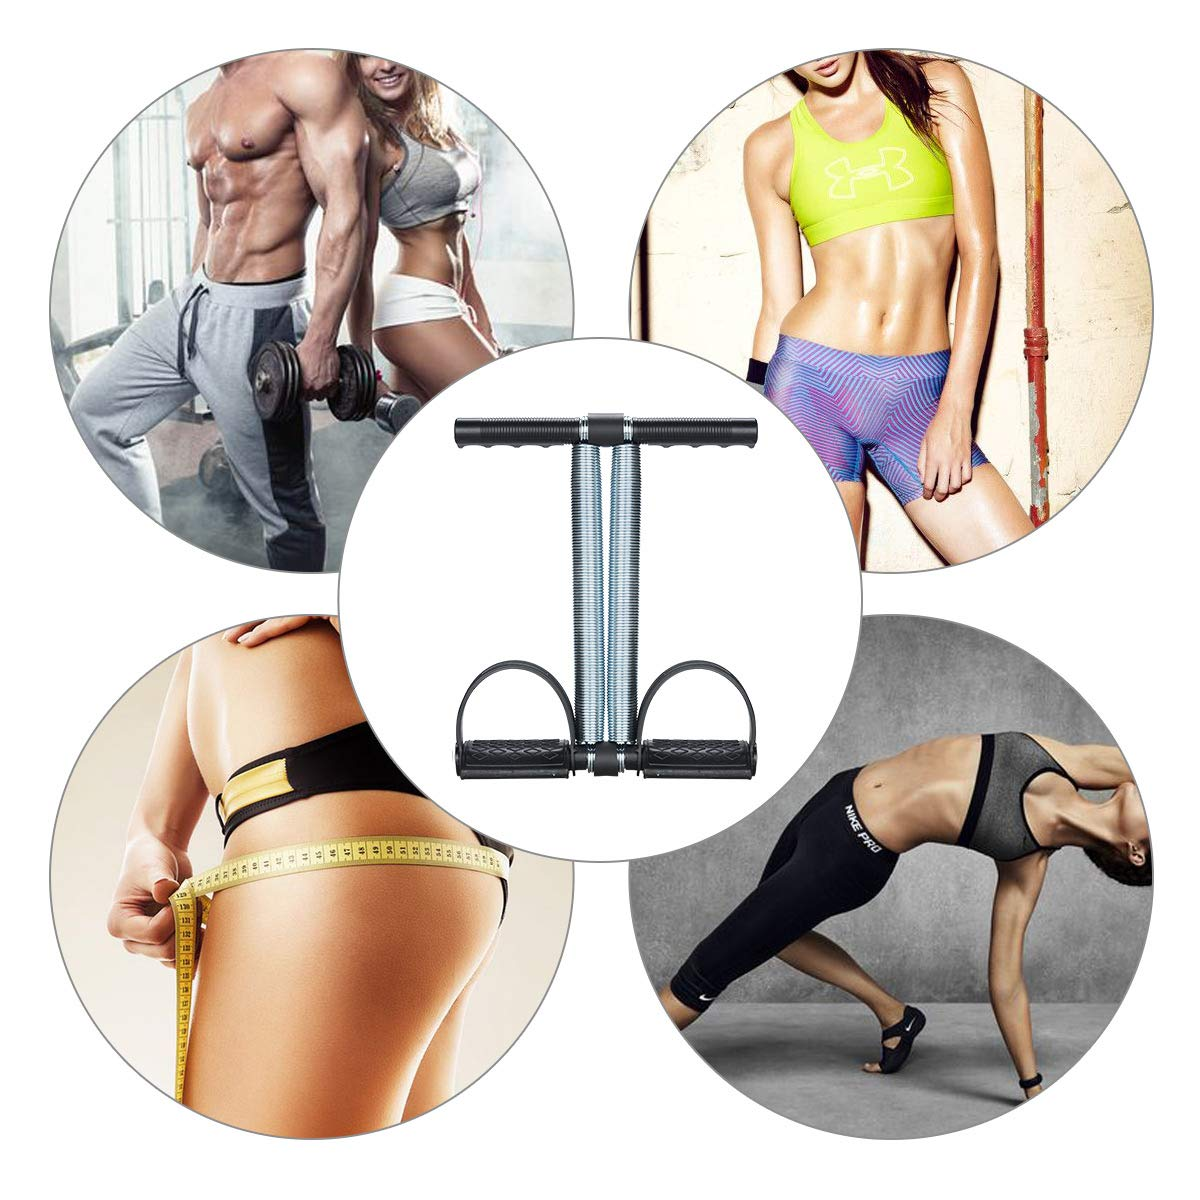 Black Lychee Elastic Sit Up Pull Rope Spring Tension Foot Pedal Abdomen Leg Exerciser Tummy Trimmer Equipment Bodybuilding Expander for Fitness Yoga Training